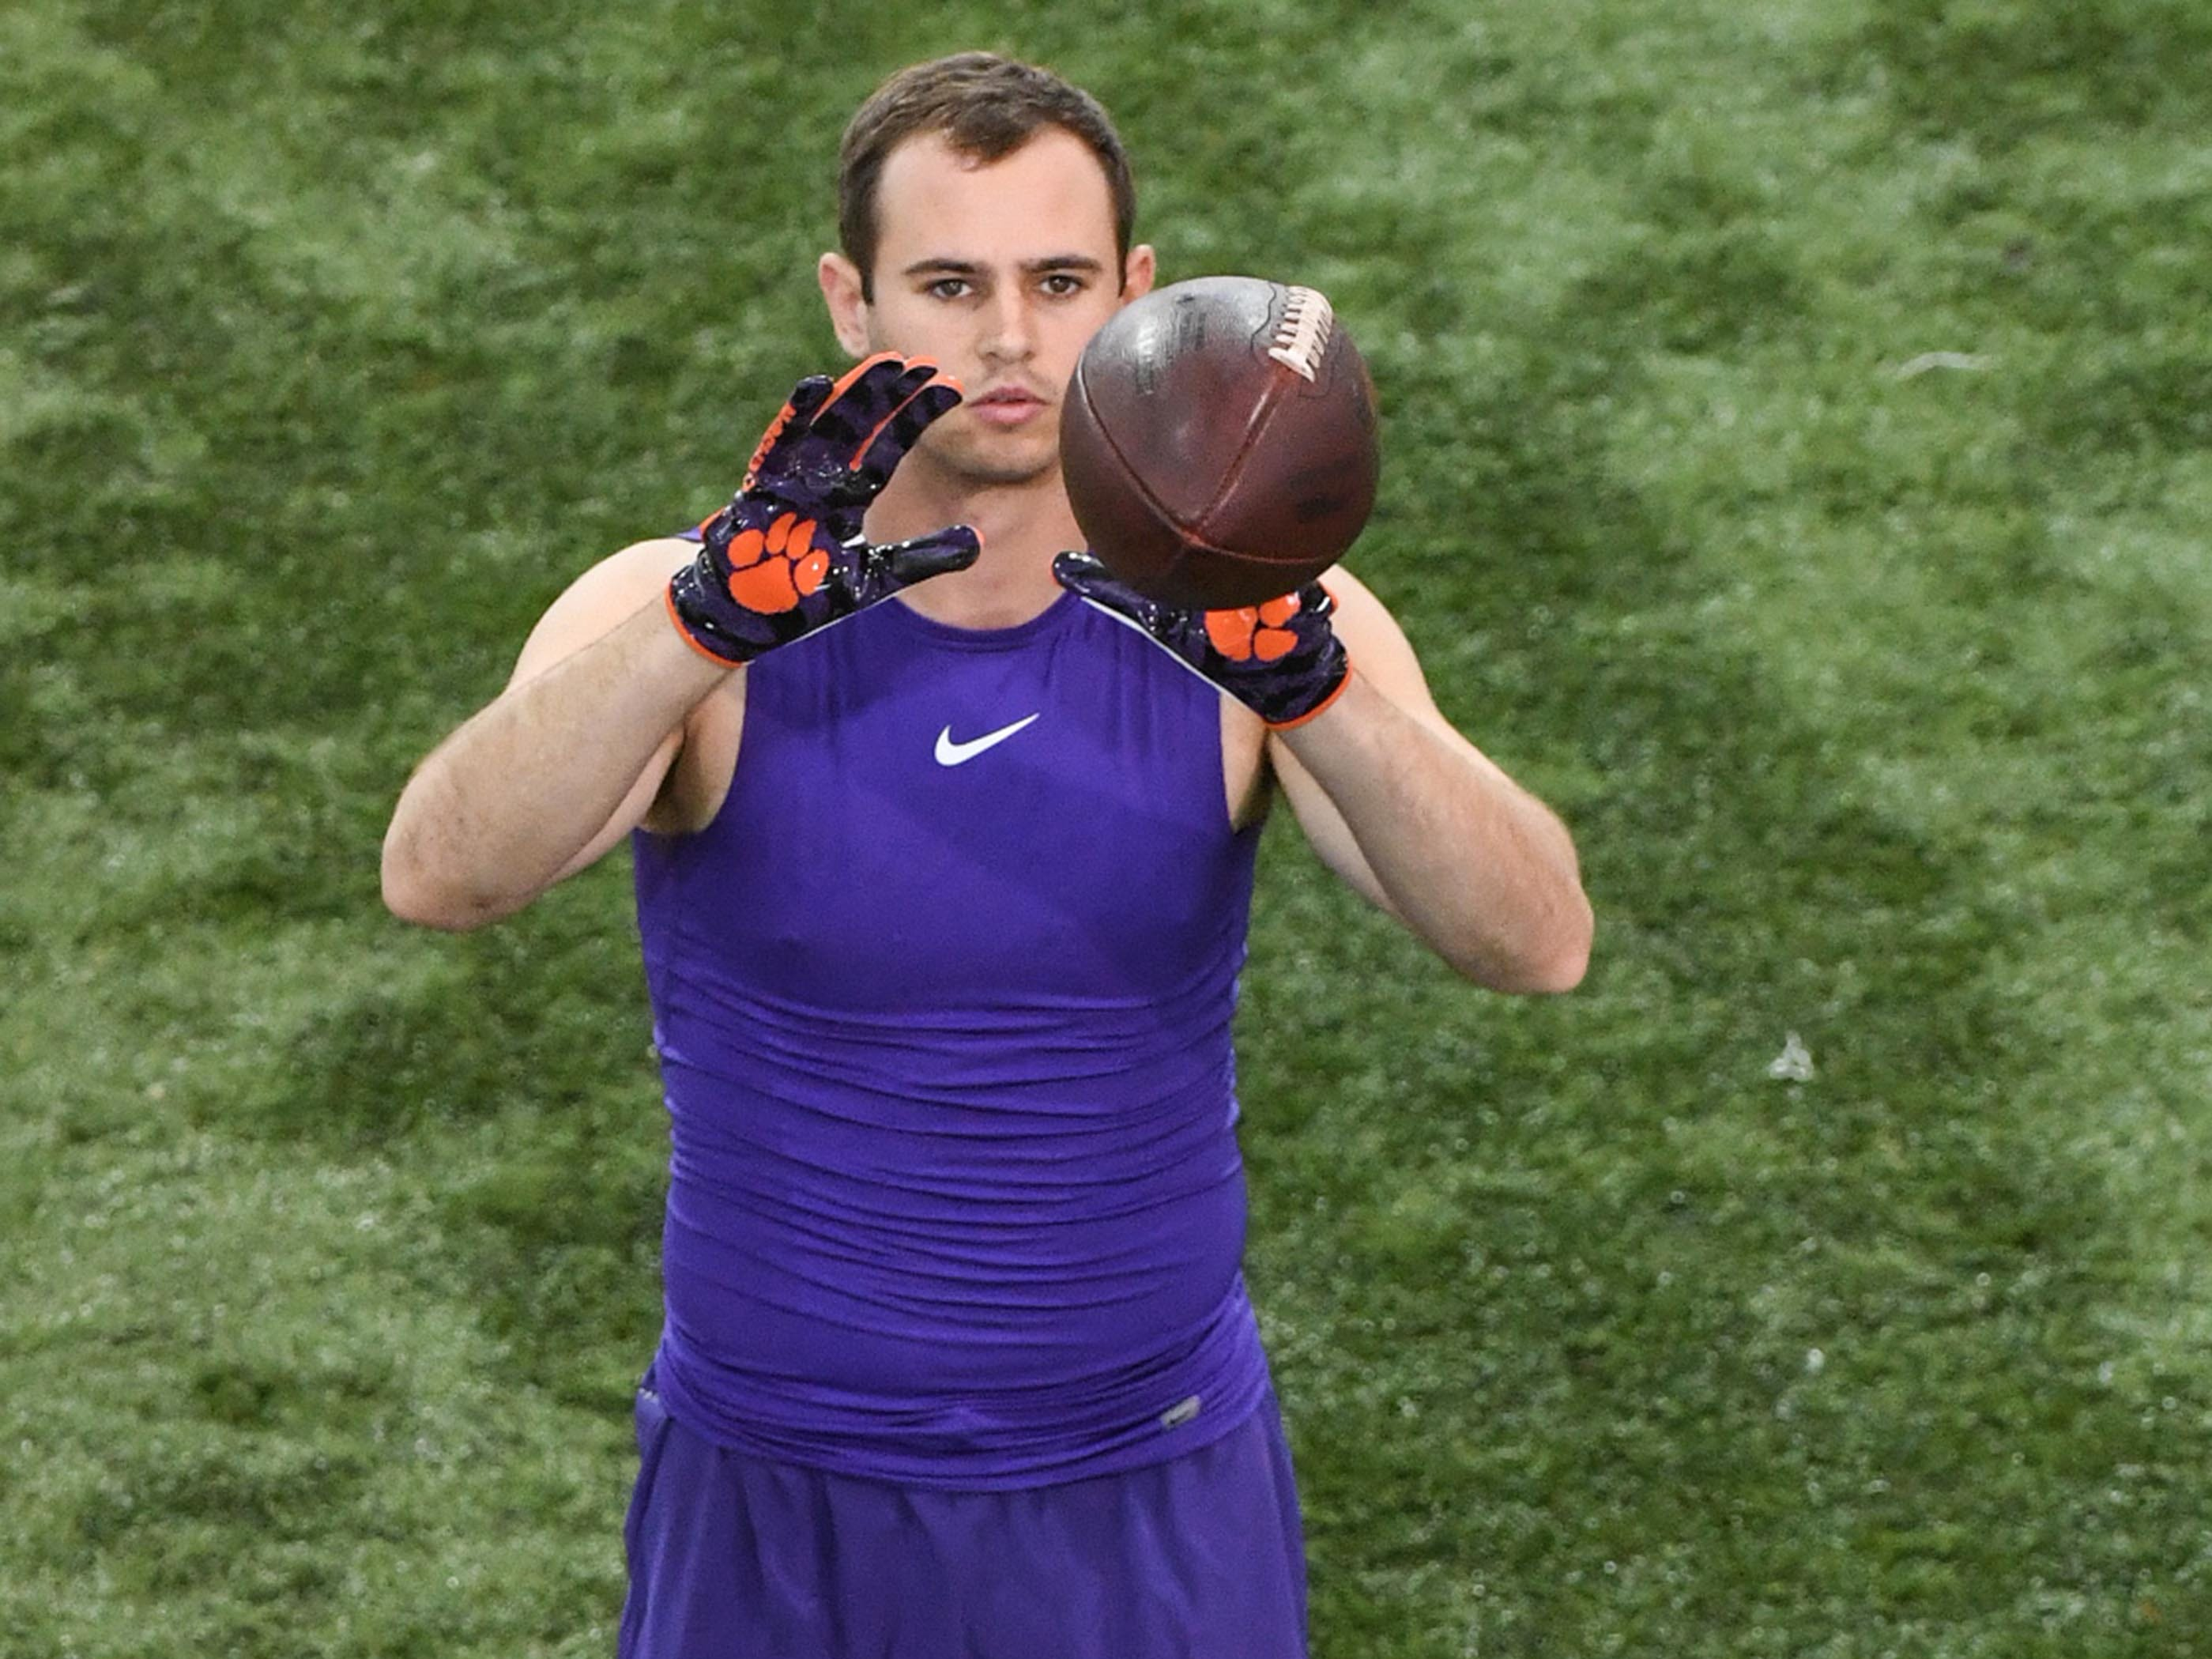 Wide receiver Hunter Renfrow catches a ball from Trevor Lawrence warming up for Clemson pro day at the Poe Indoor Facility in Clemson Thursday, March 14, 2019.